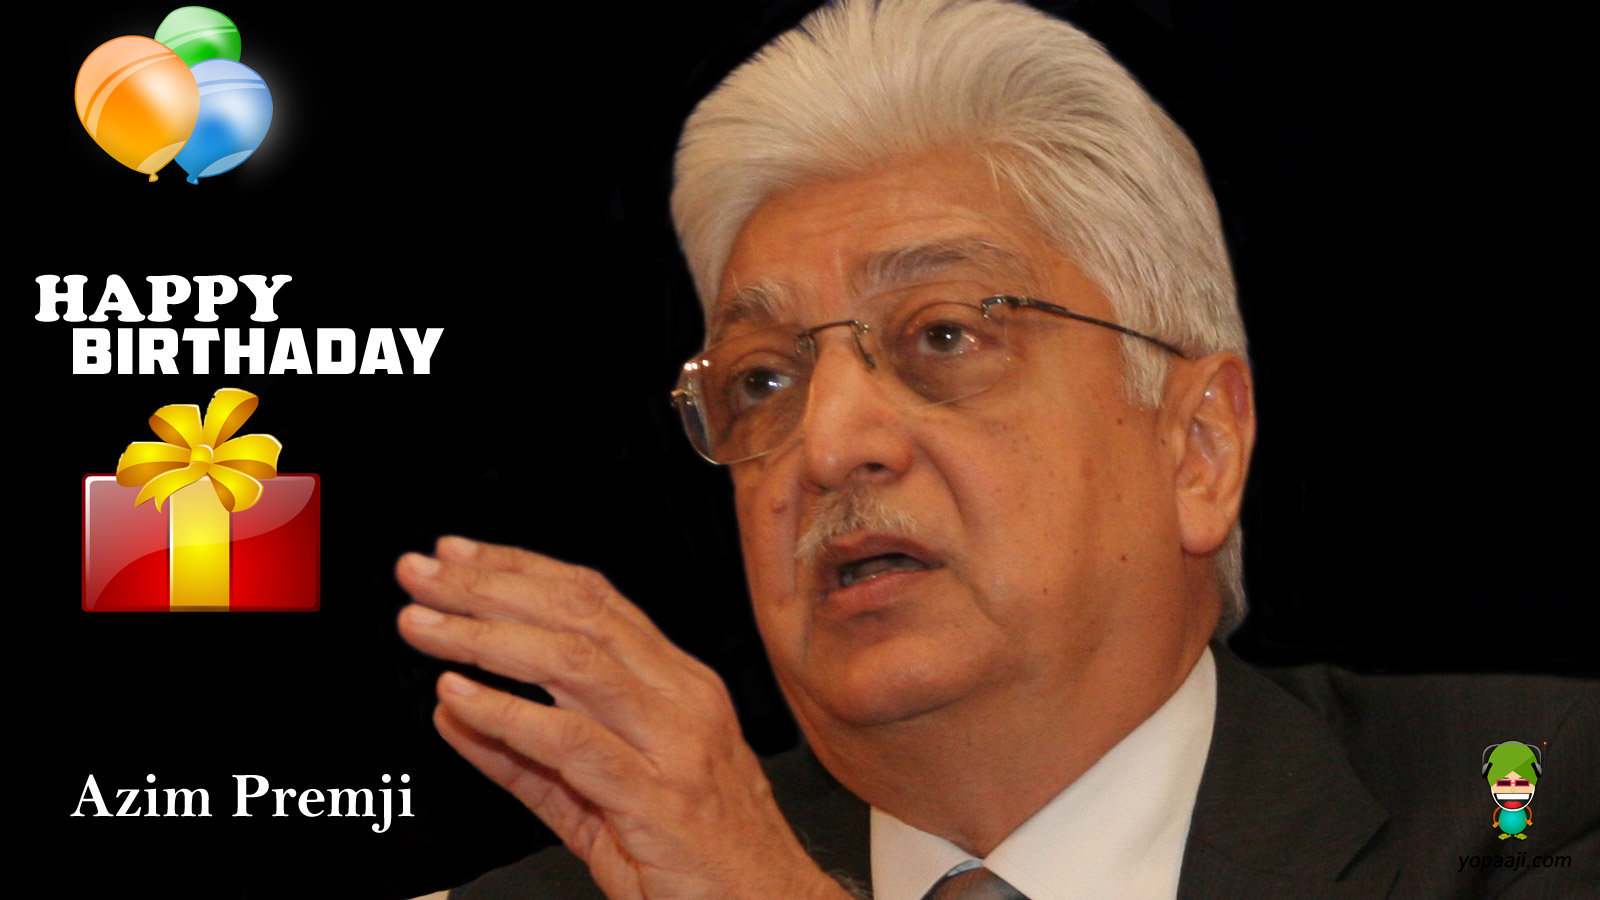 Azim Premji's quote #4